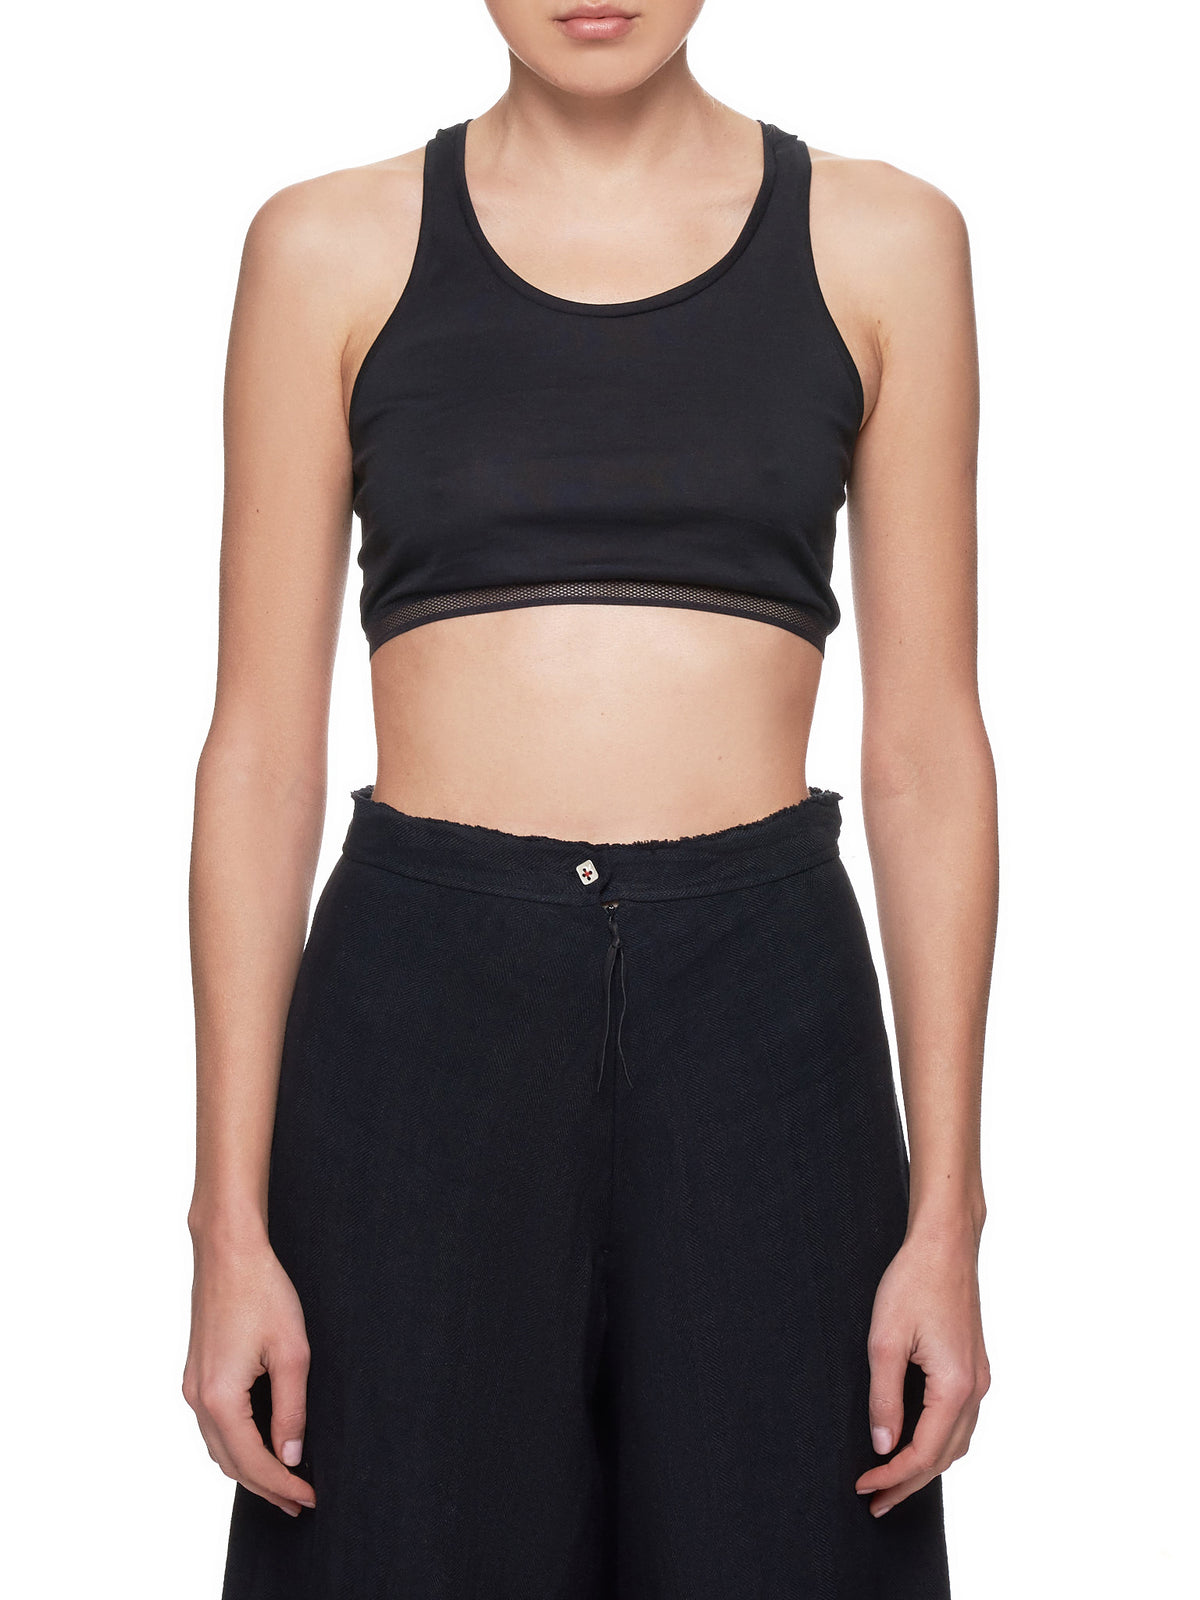 Racerback Cropped Top (RTW110-JCL13-BLACK)